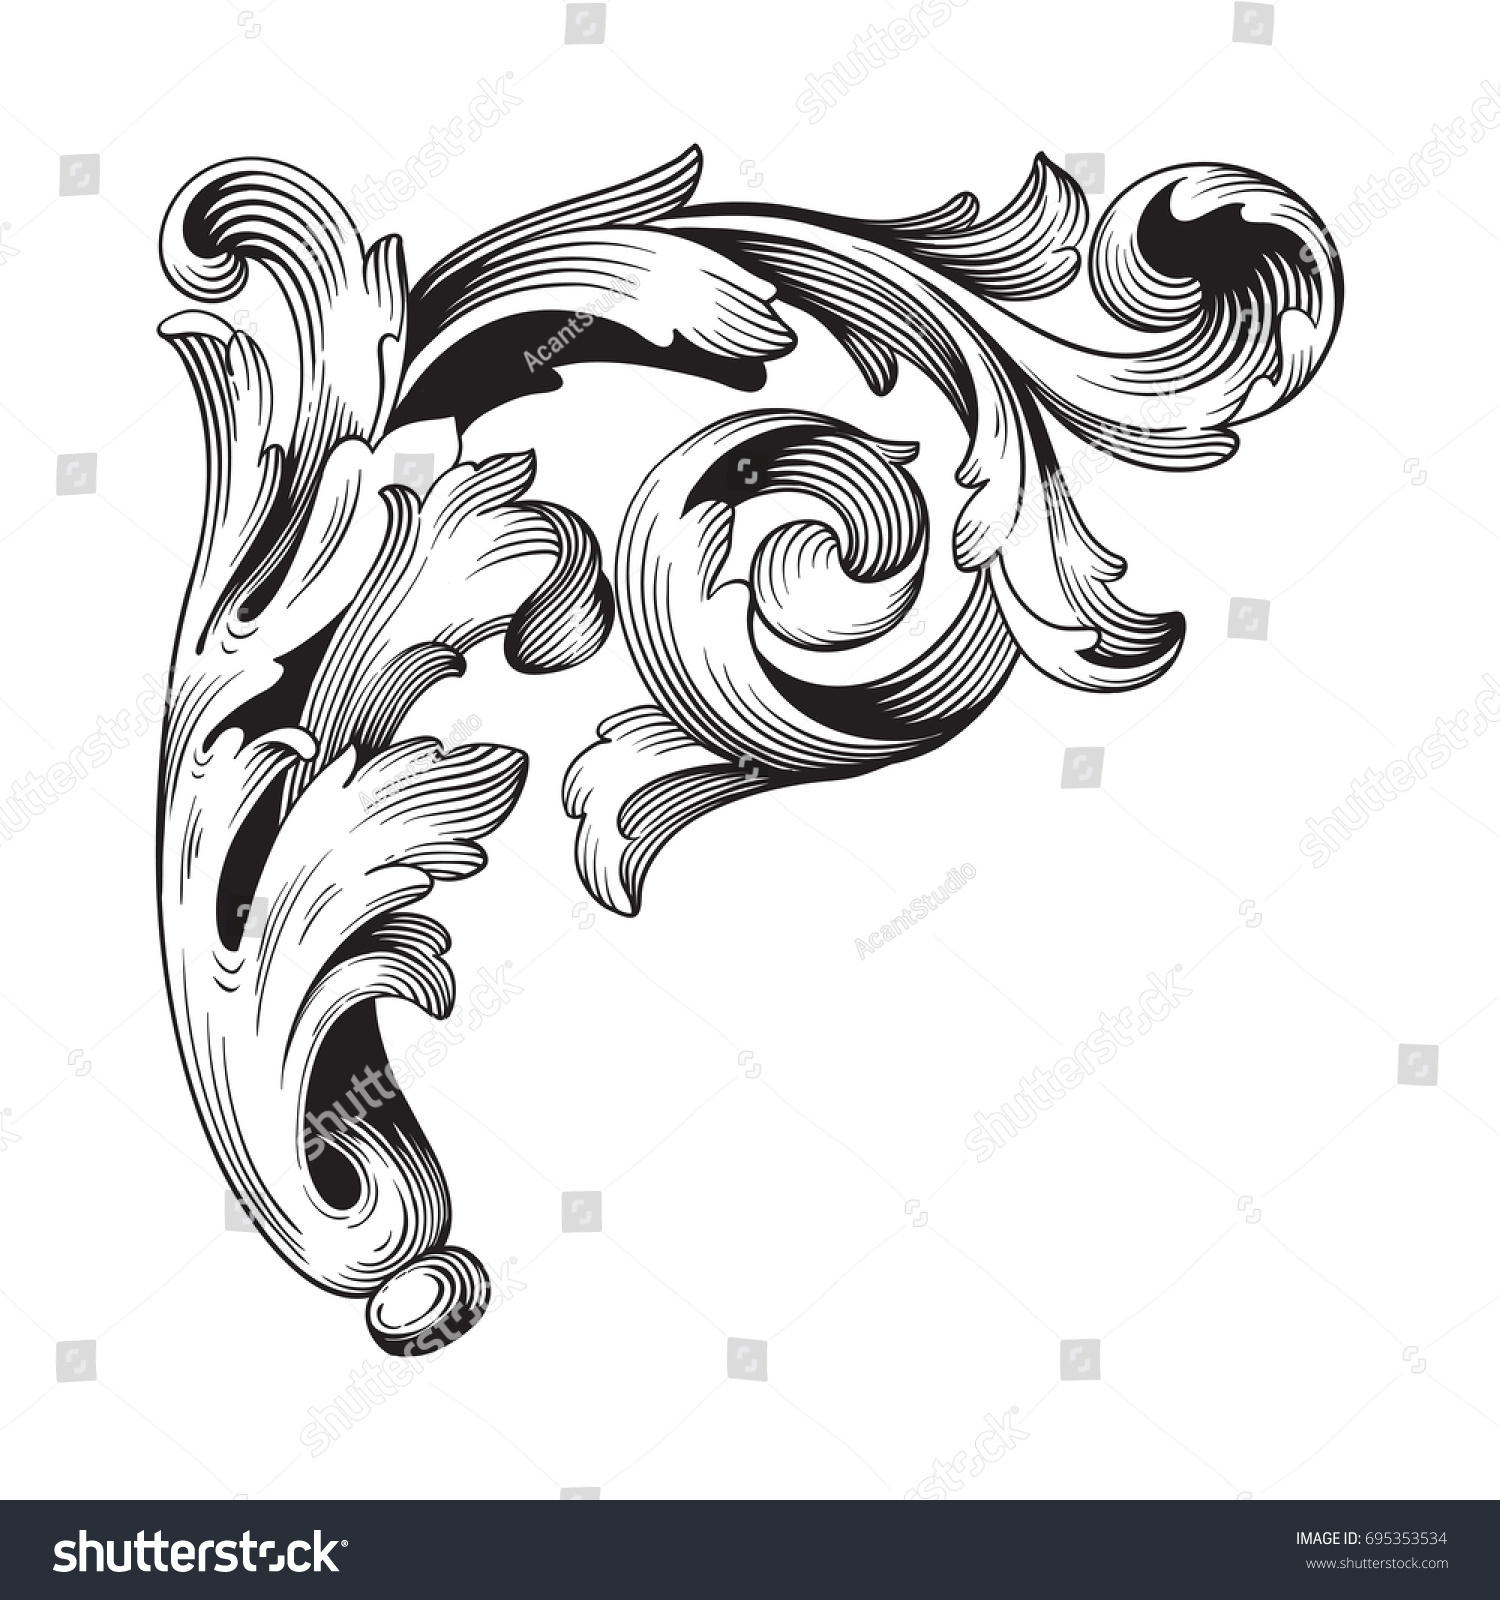 Baroque Vector Vintage Elements Design Decorative Stock